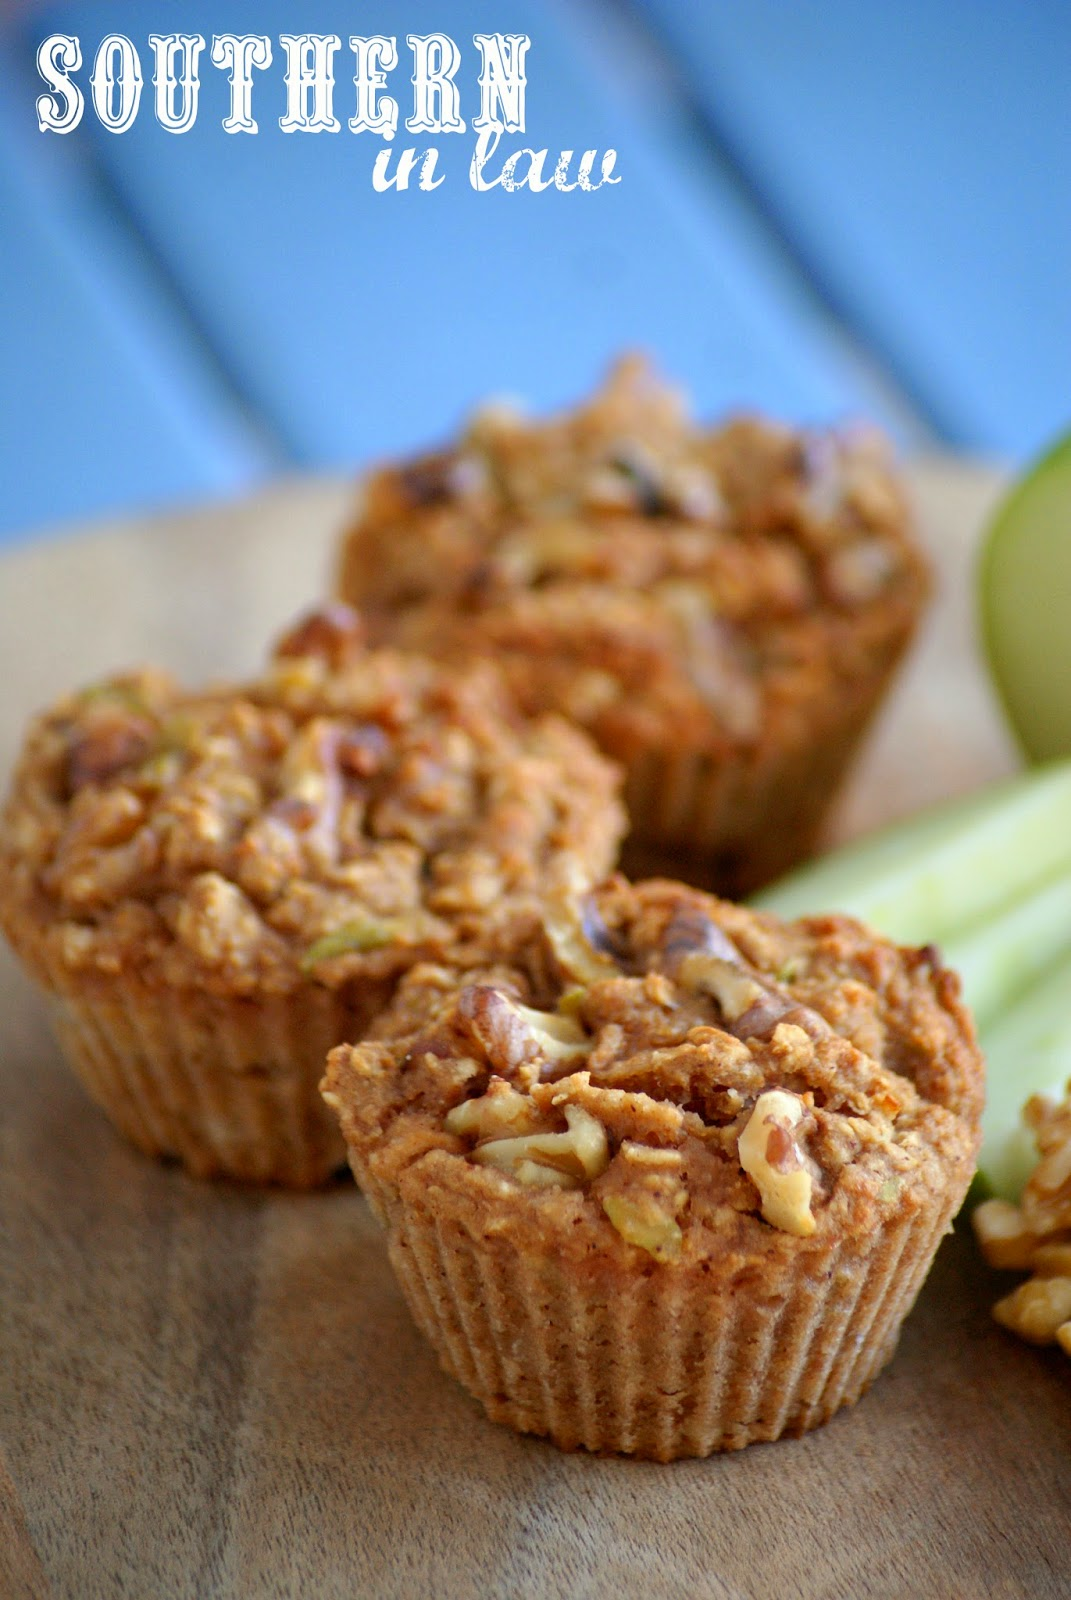 Gluten Free Apple Walnut Muffins Recipe - healthy, gluten free, refined sugar free and freezeable muffin recipe